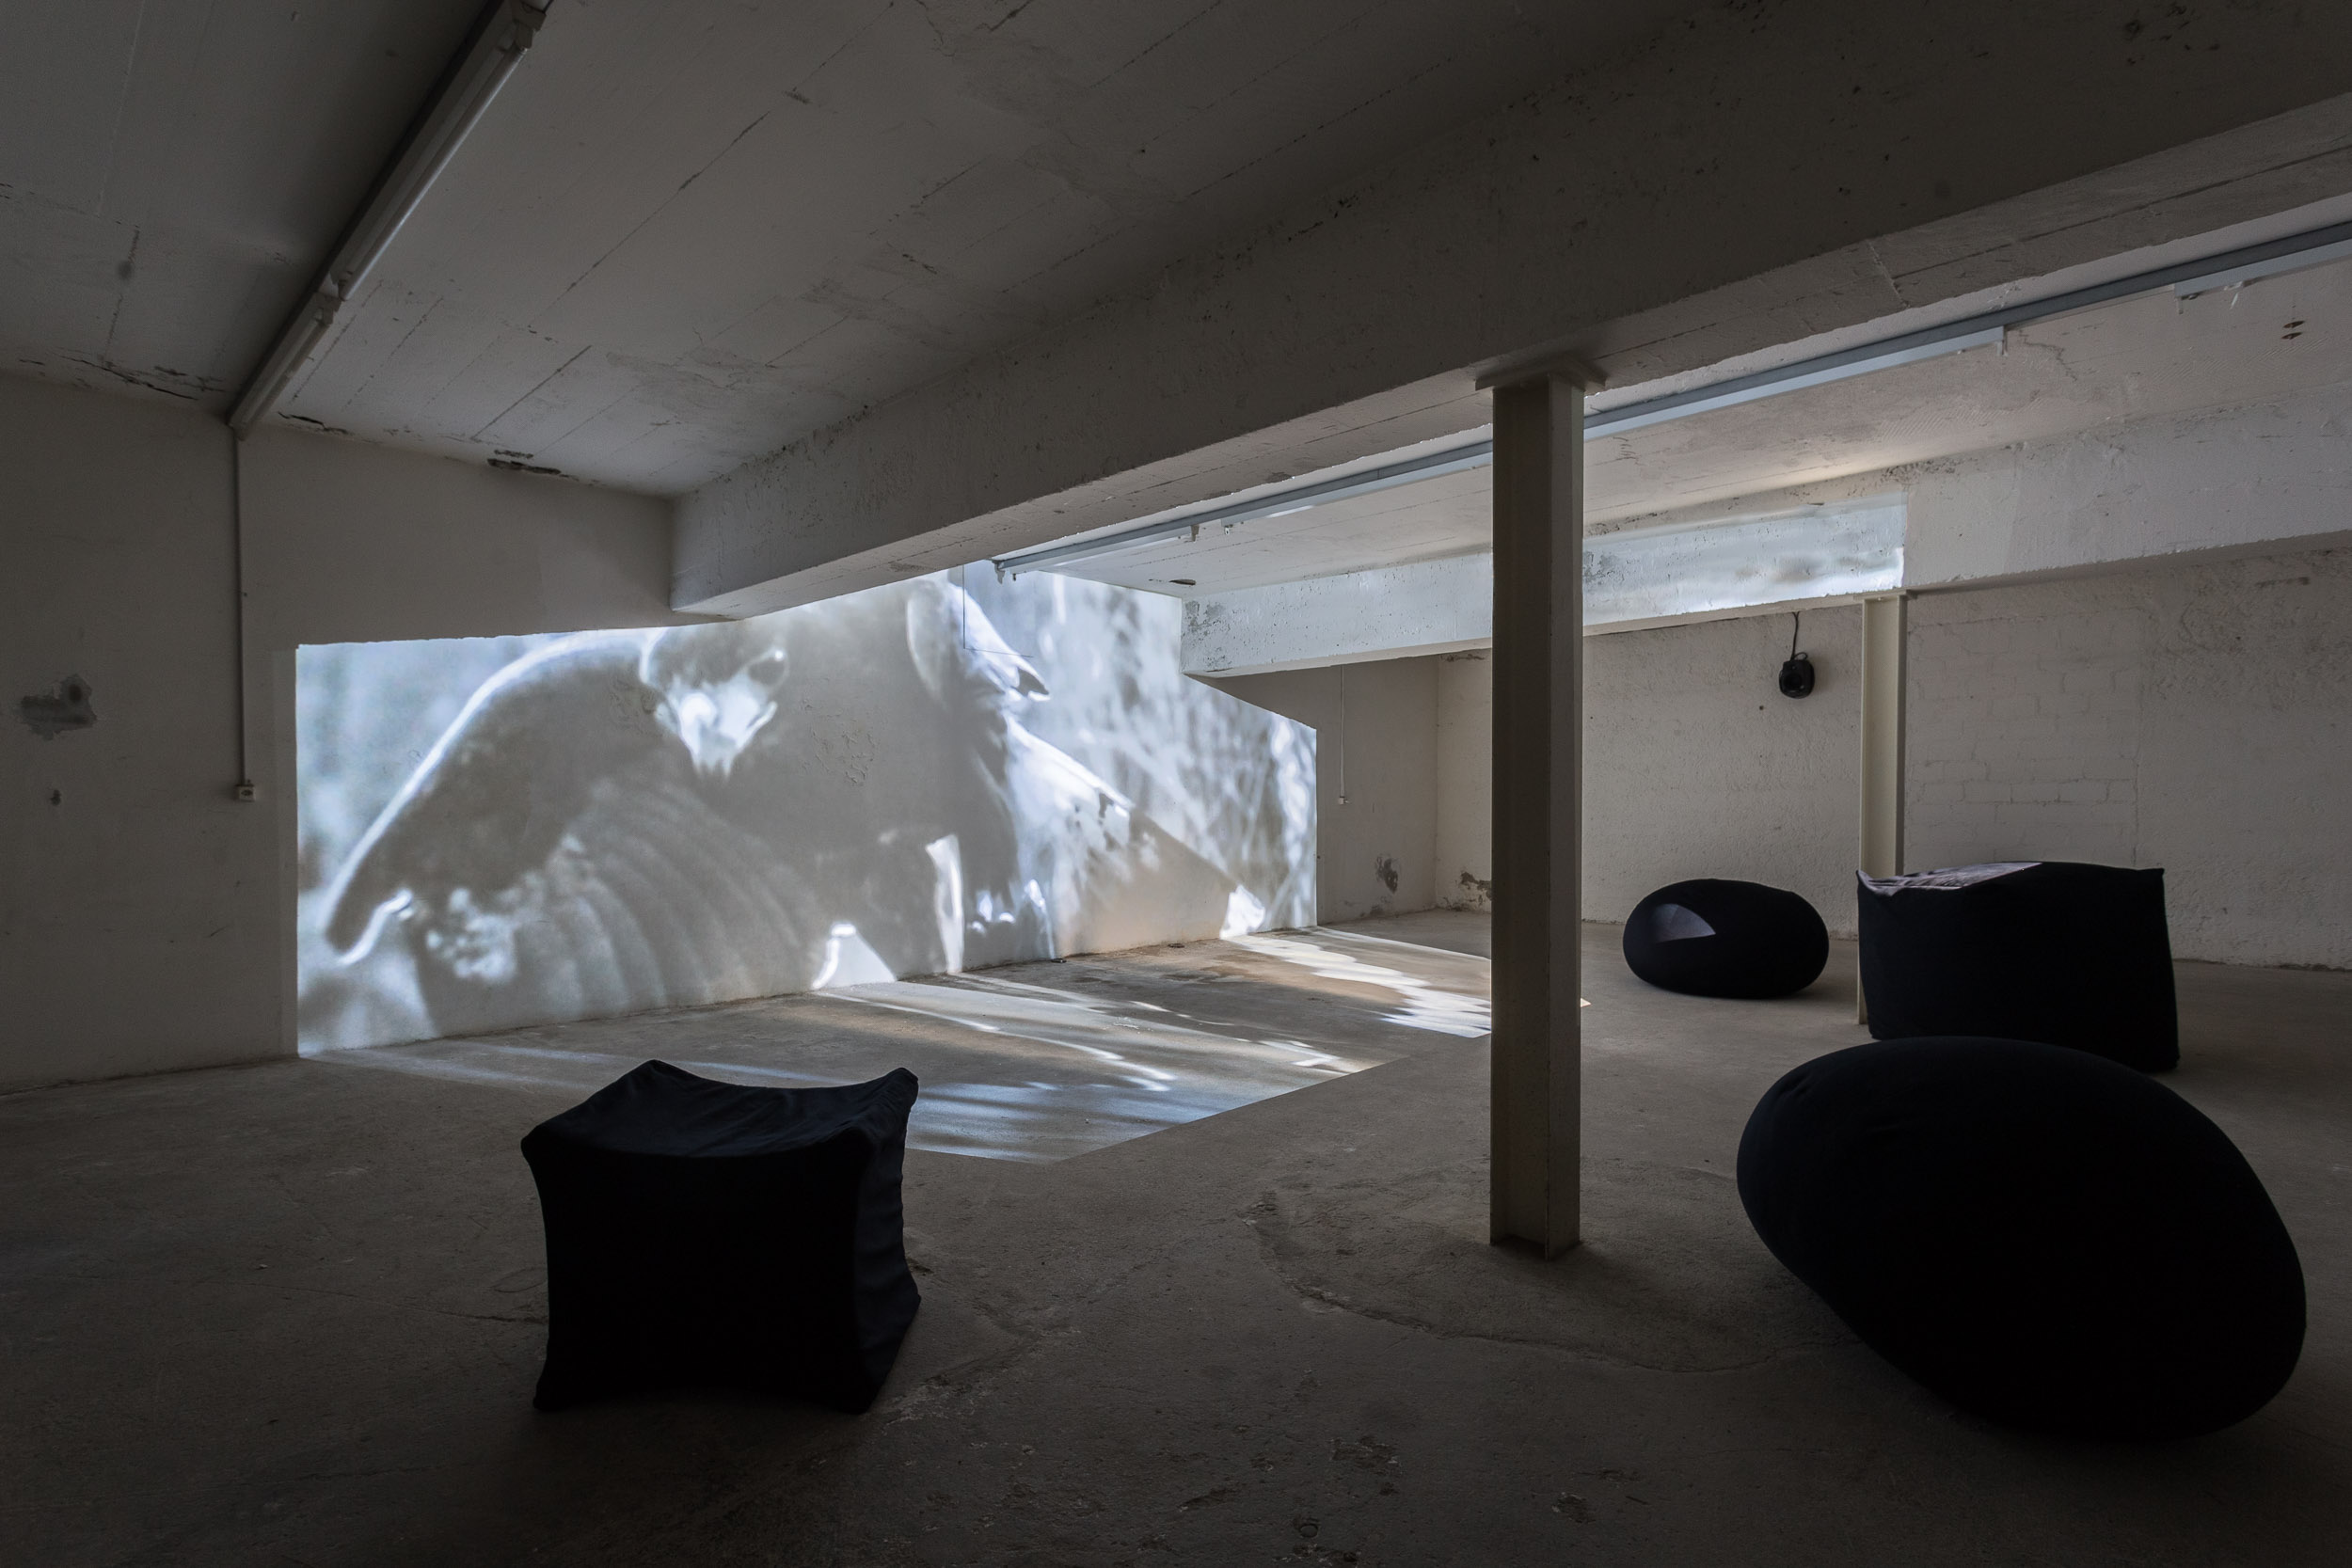 Fiona Banner,  Phantom , high definition digital film, 00:09:28  Fiona Banner,  Full Stop Bean Bags (Peanuts, Klang, Helvetica and Capitalist) , 2015, textile, beans, 62 x 62 x 84 cm; 48 x 48 x 44 cm; 90 x90 x 11cm; 85 x 78 cm  Photo: Kilian Bannwart